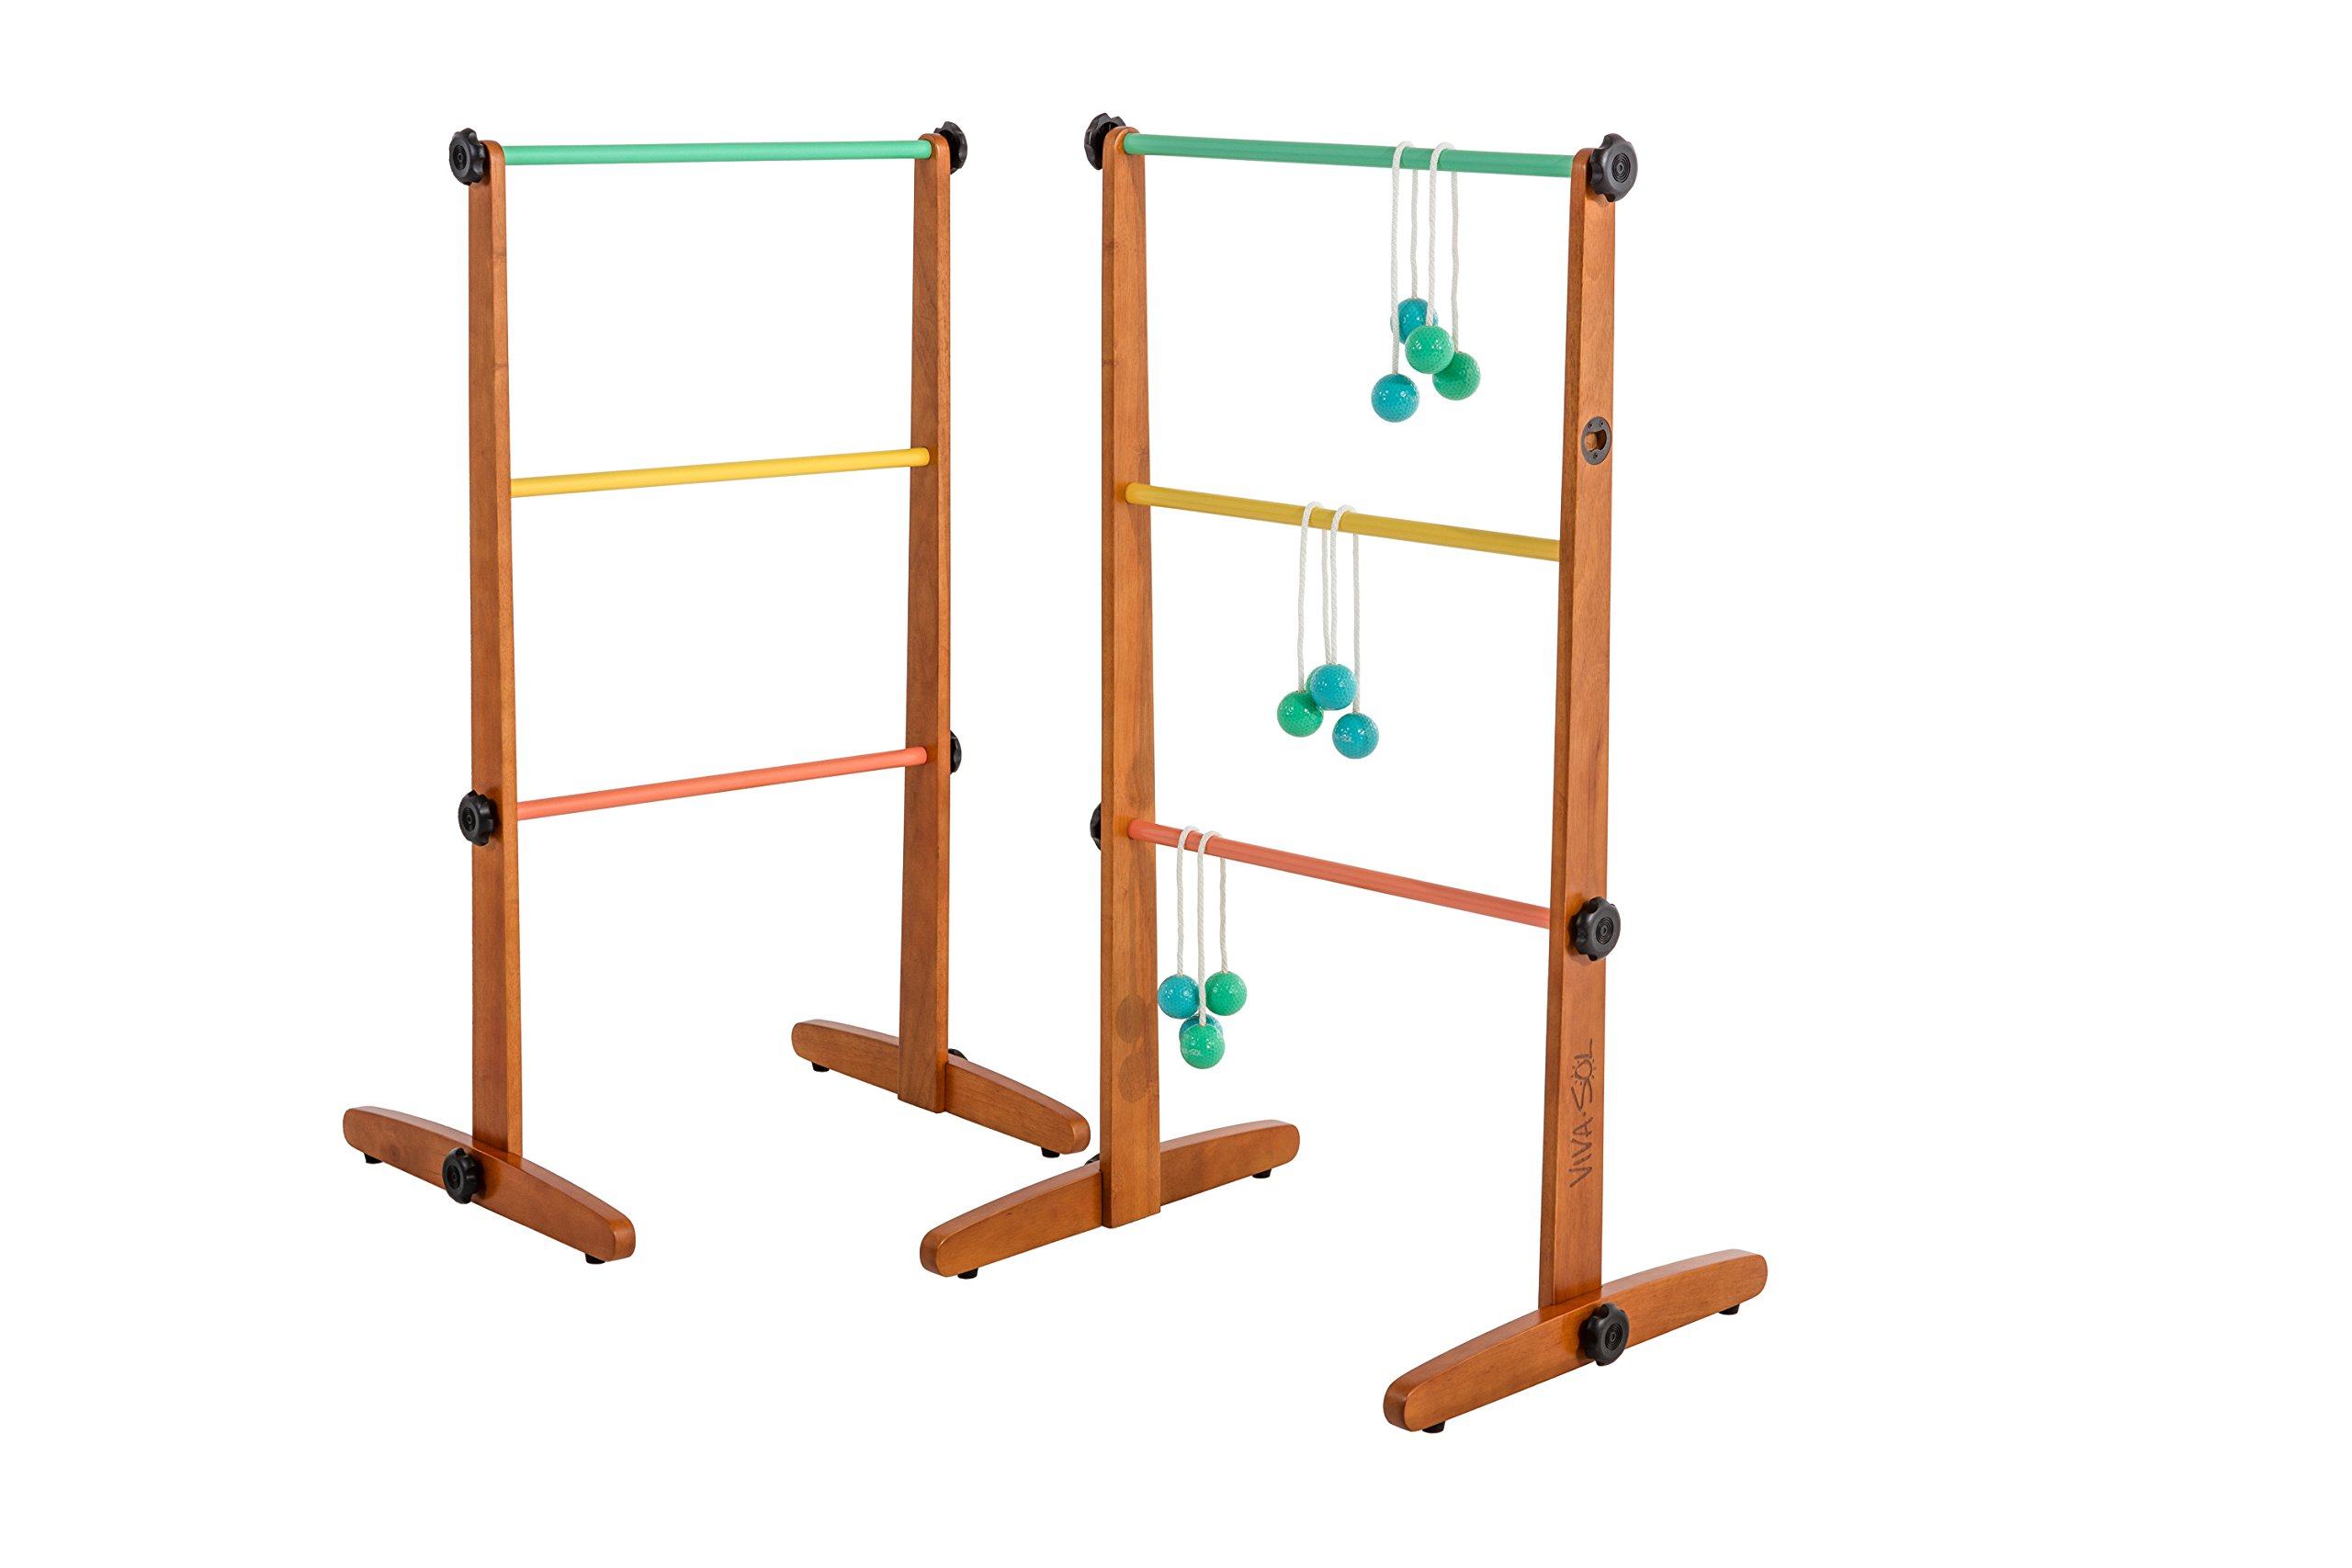 Viva Sol Premium Outdoor Ladderball Game Includes Two Ladder Target and Six Golf Ball Bolas by Viva Sol